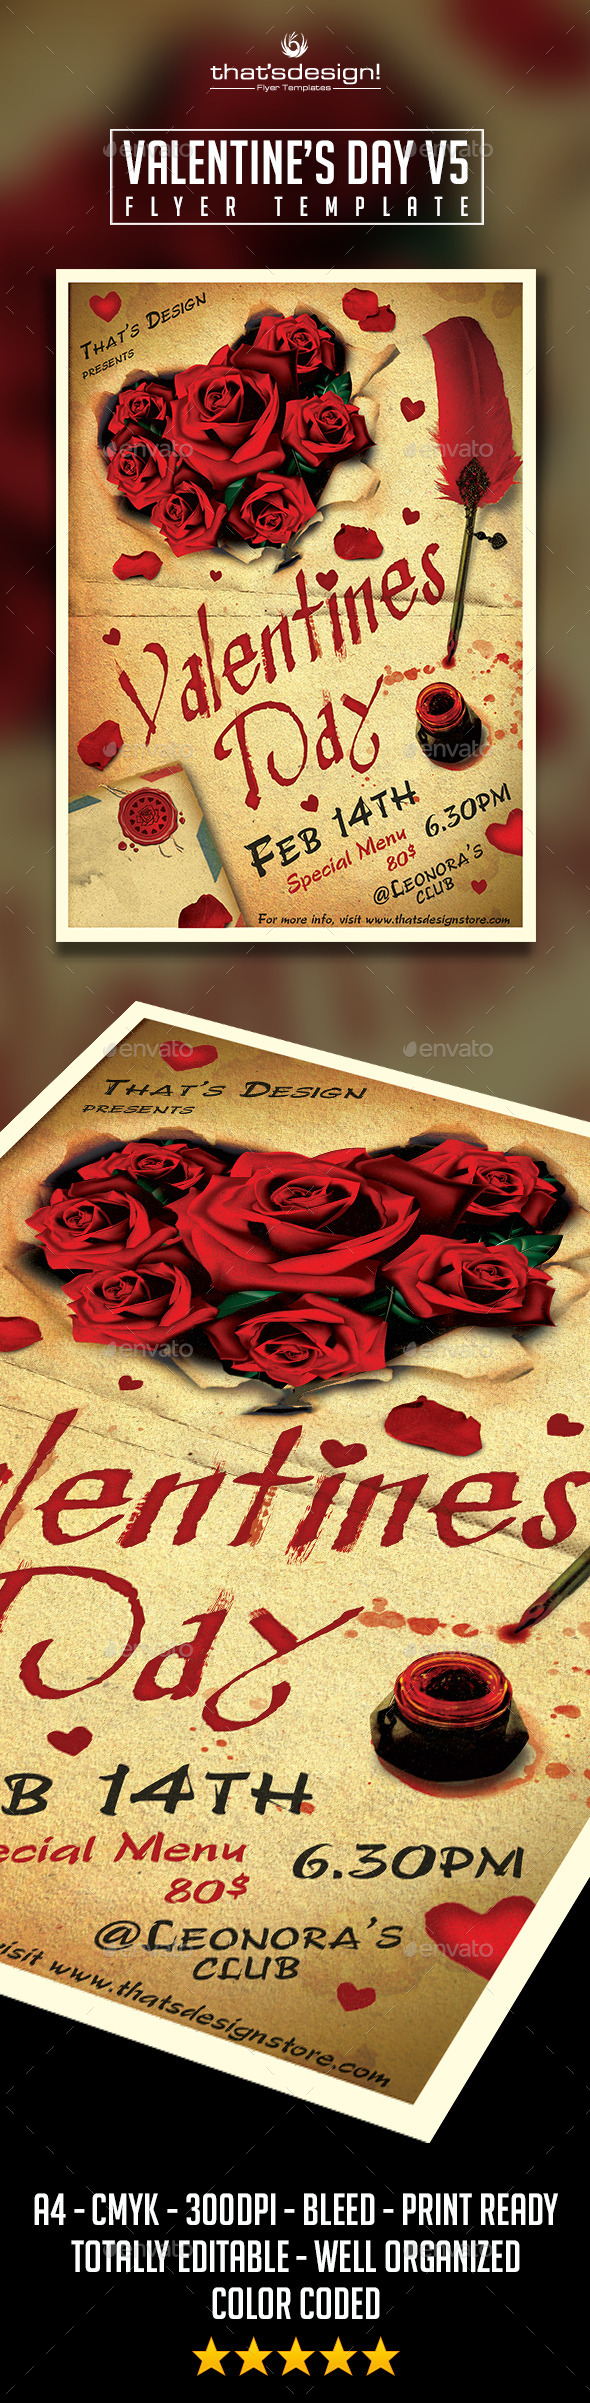 Valentines Day Flyer Template V5